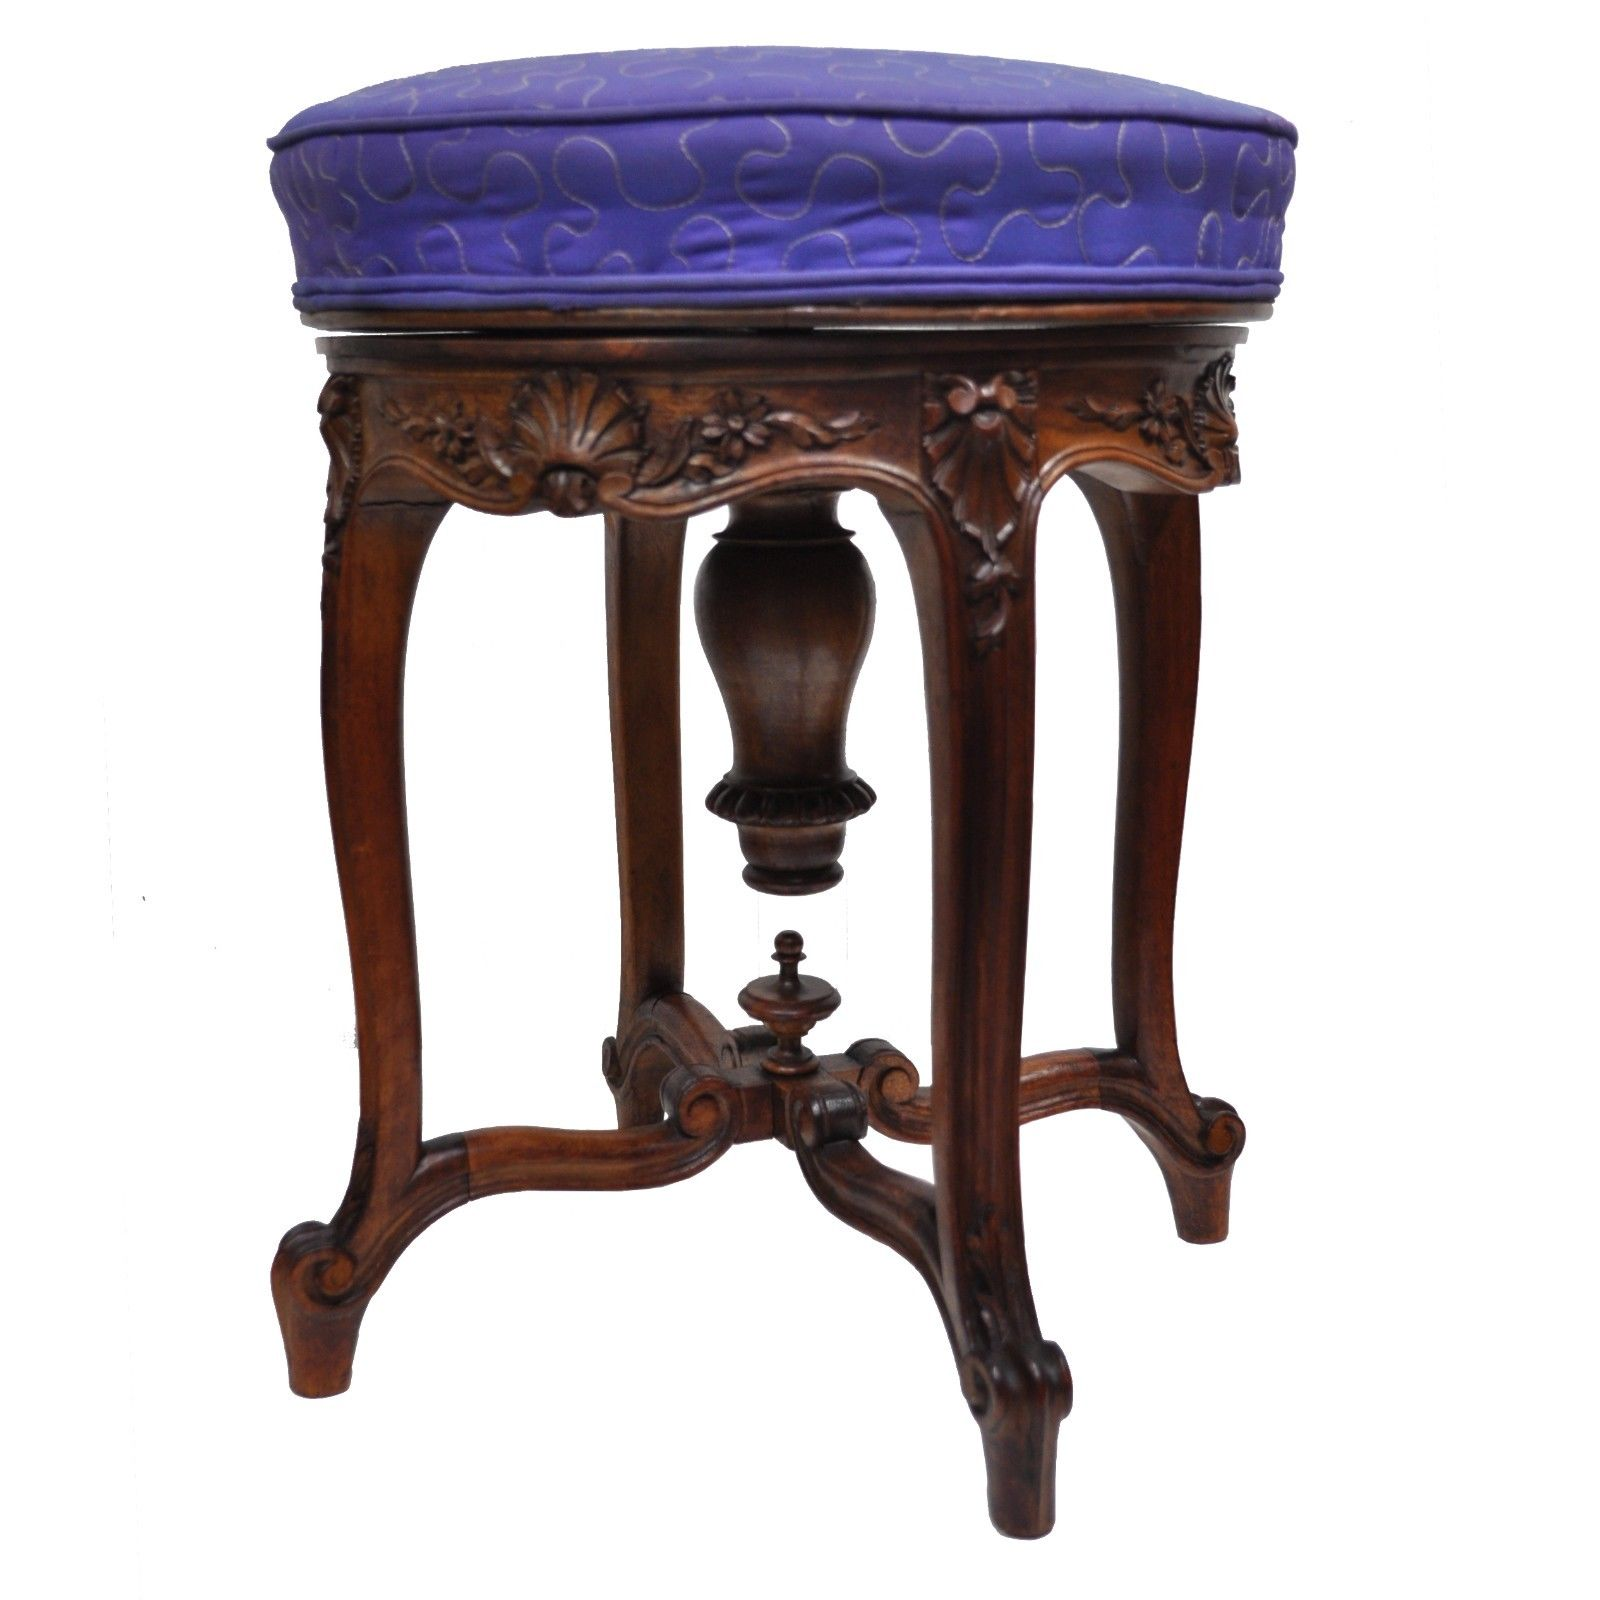 Awesome Antique French Louis Xv Style Finely Carved Walnut Caraccident5 Cool Chair Designs And Ideas Caraccident5Info